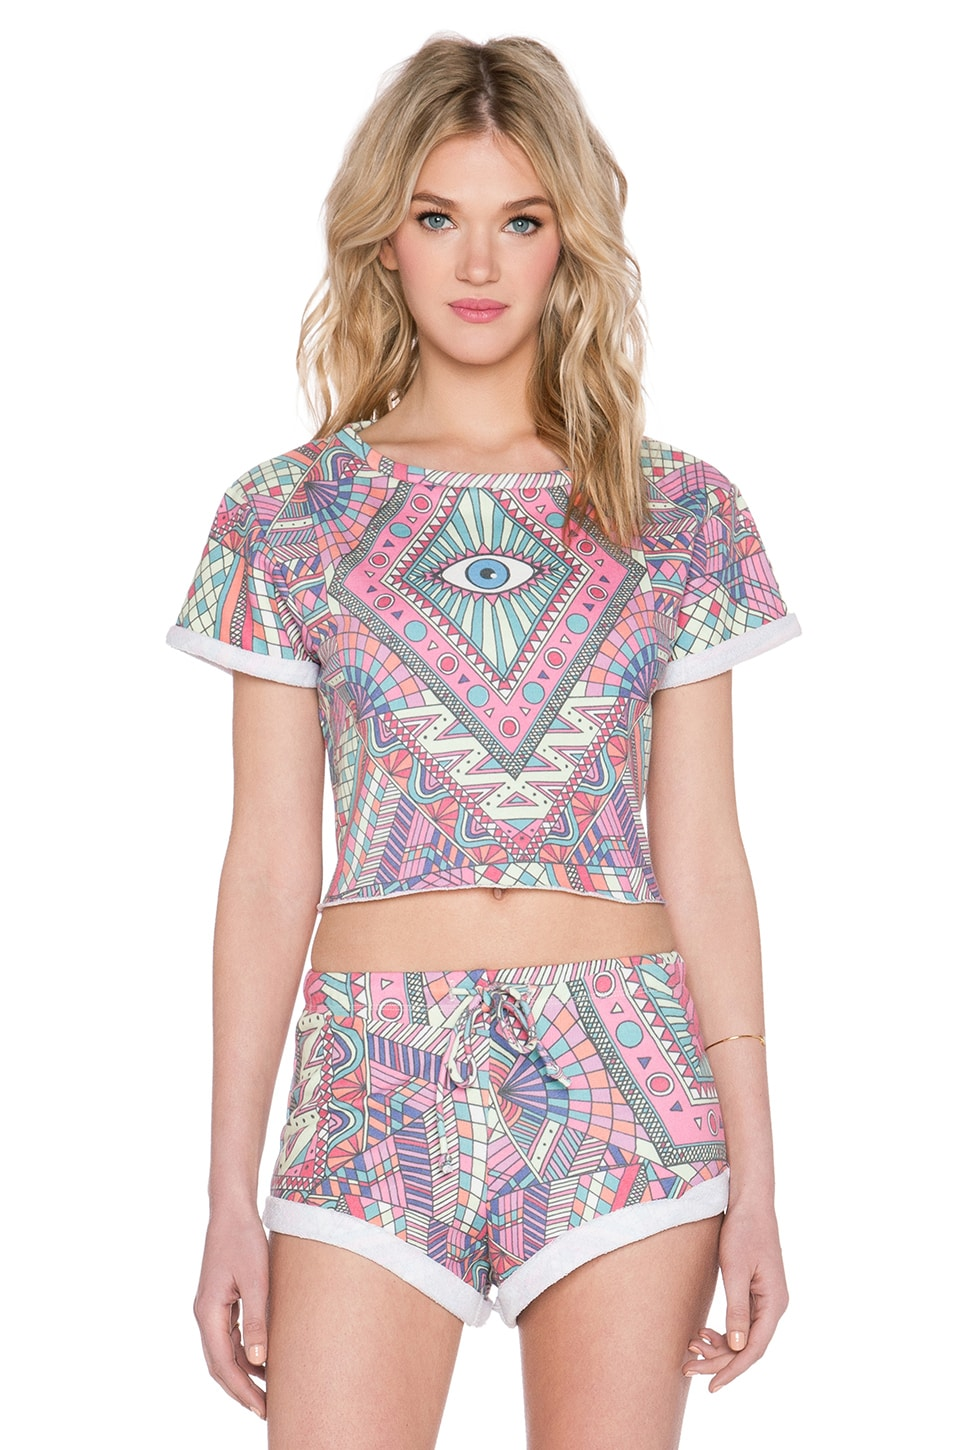 Wildfox Couture Third Eye Venice Crop Top in Multi